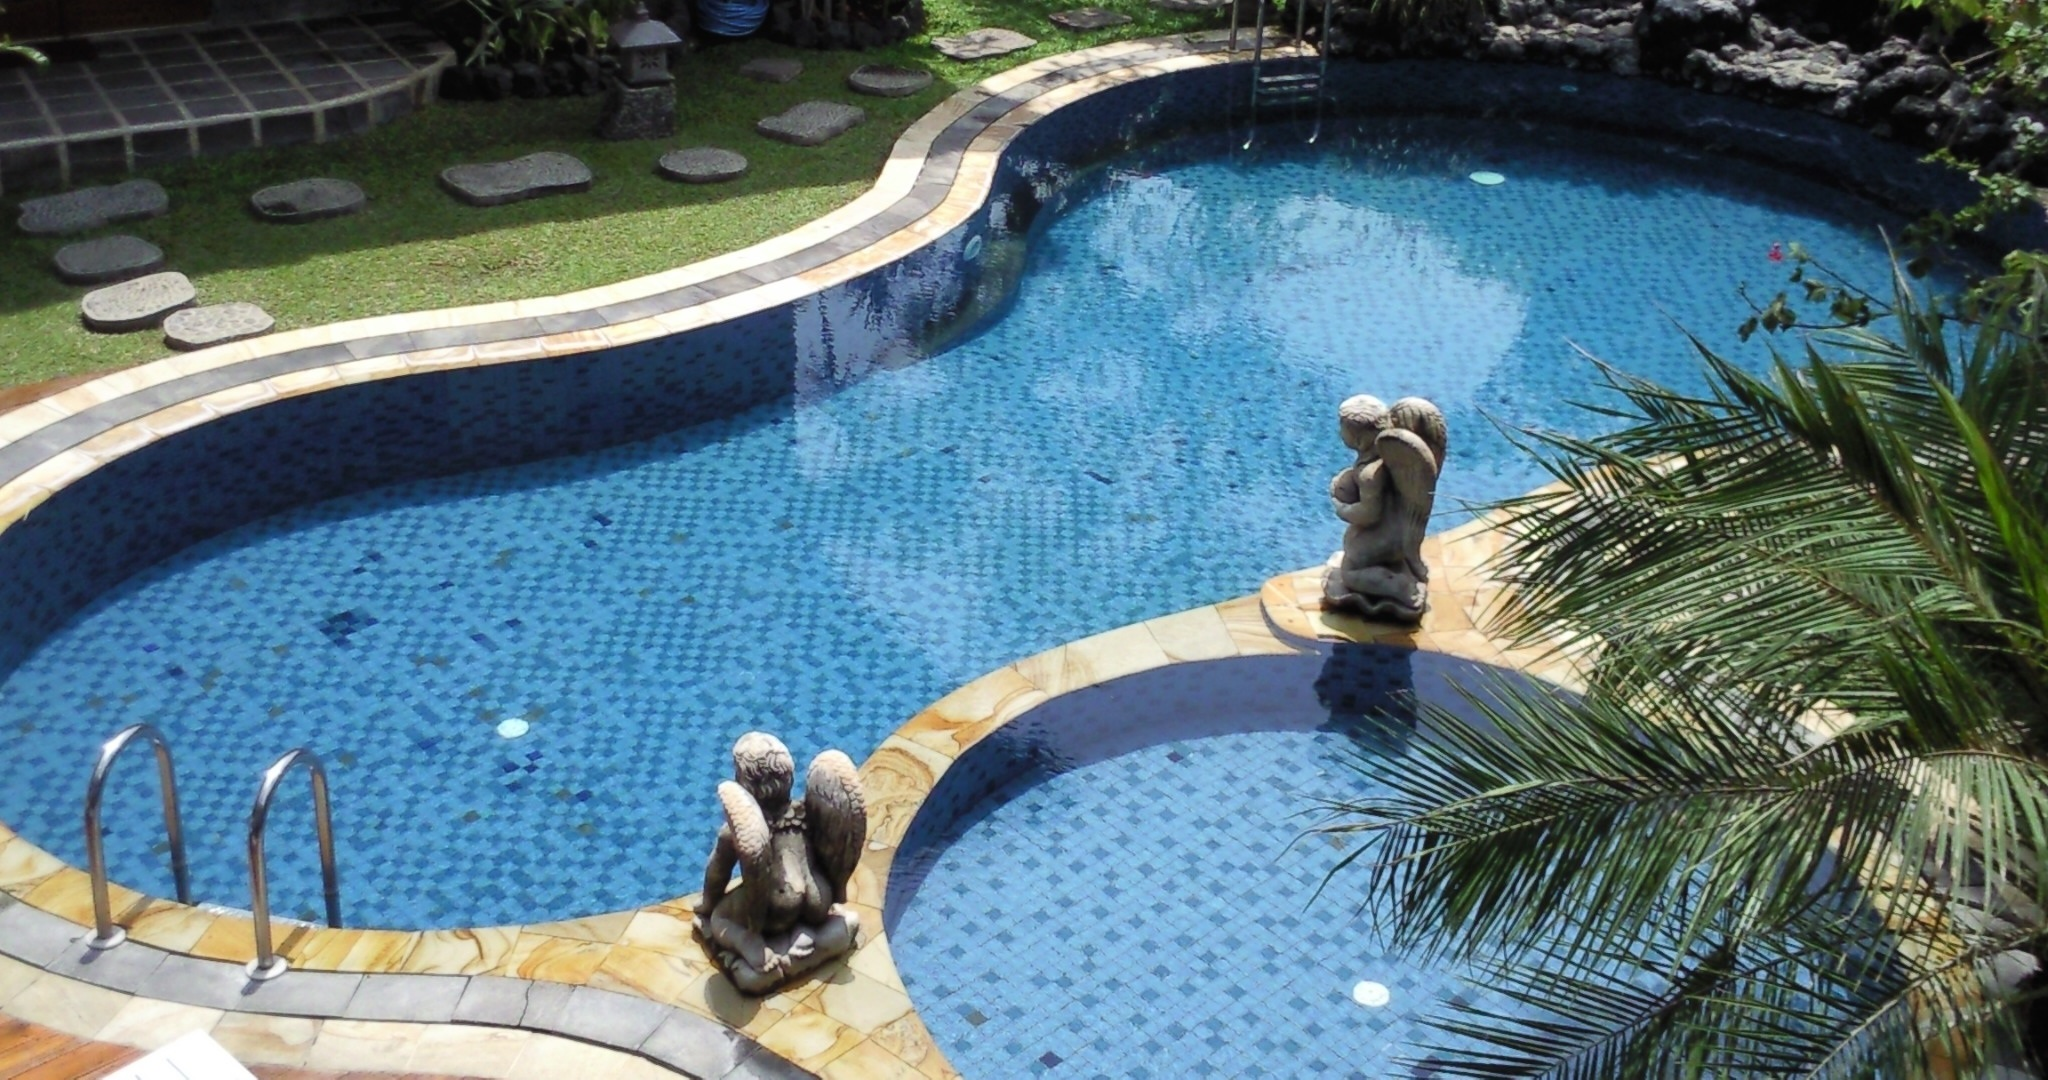 Frisco Pools - Pool Maintenance Pool Repair Frisco Texas